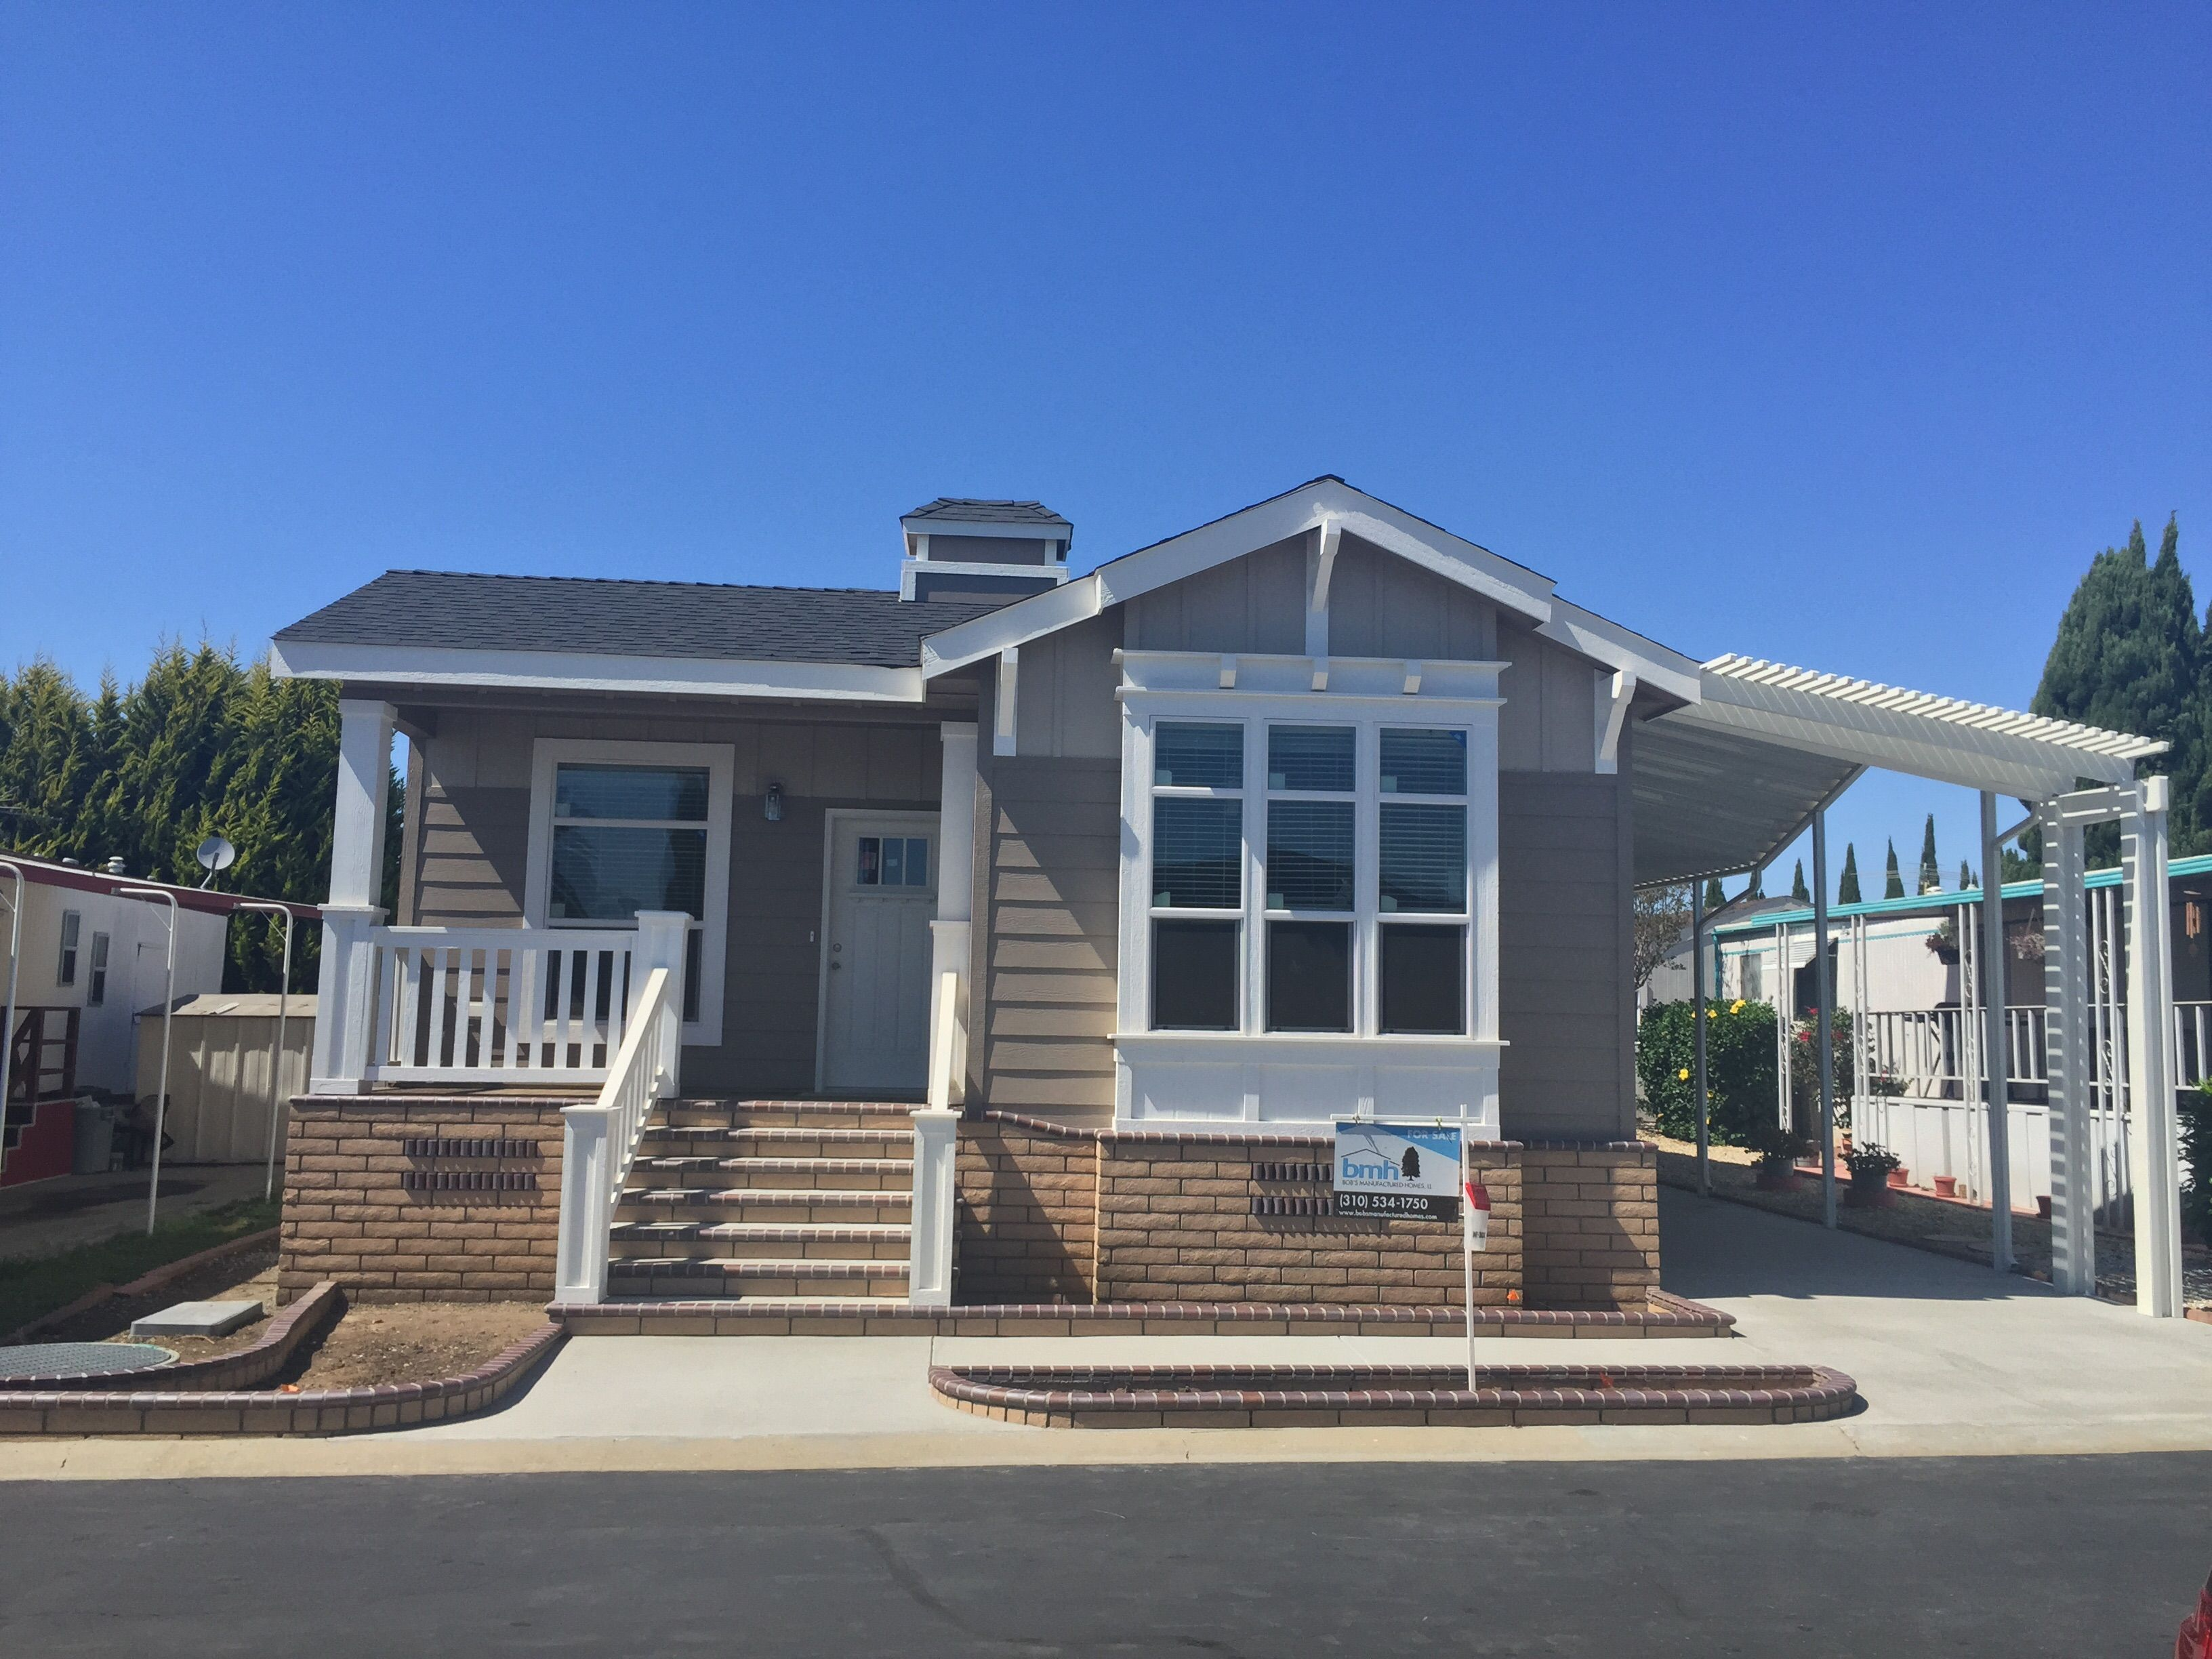 2015 Skyline Mobile Manufactured Home In Carson Ca Via Mhvillage